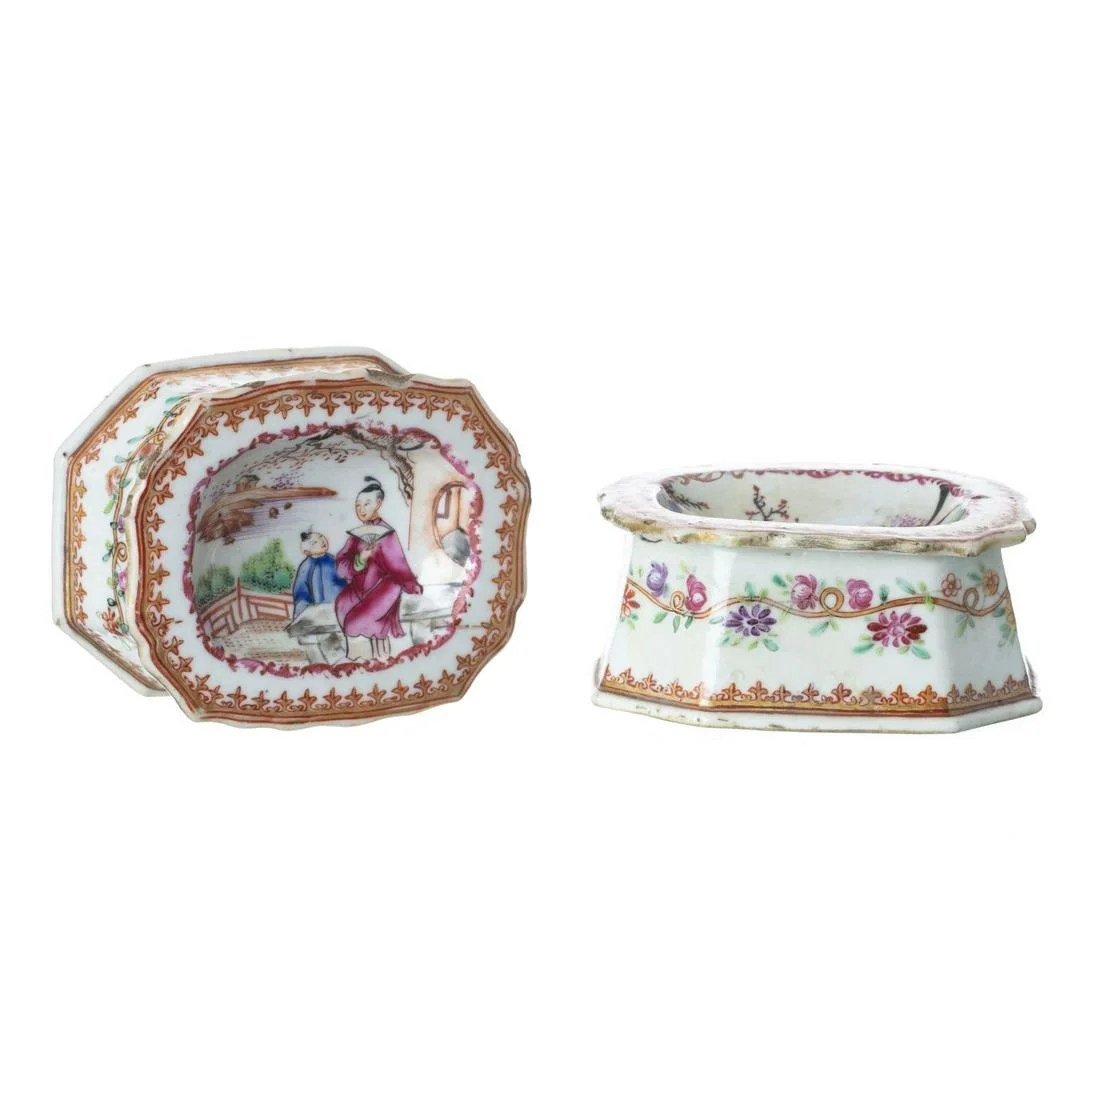 Pair of Mandarin Chinese Porcelain Salt Cellars,